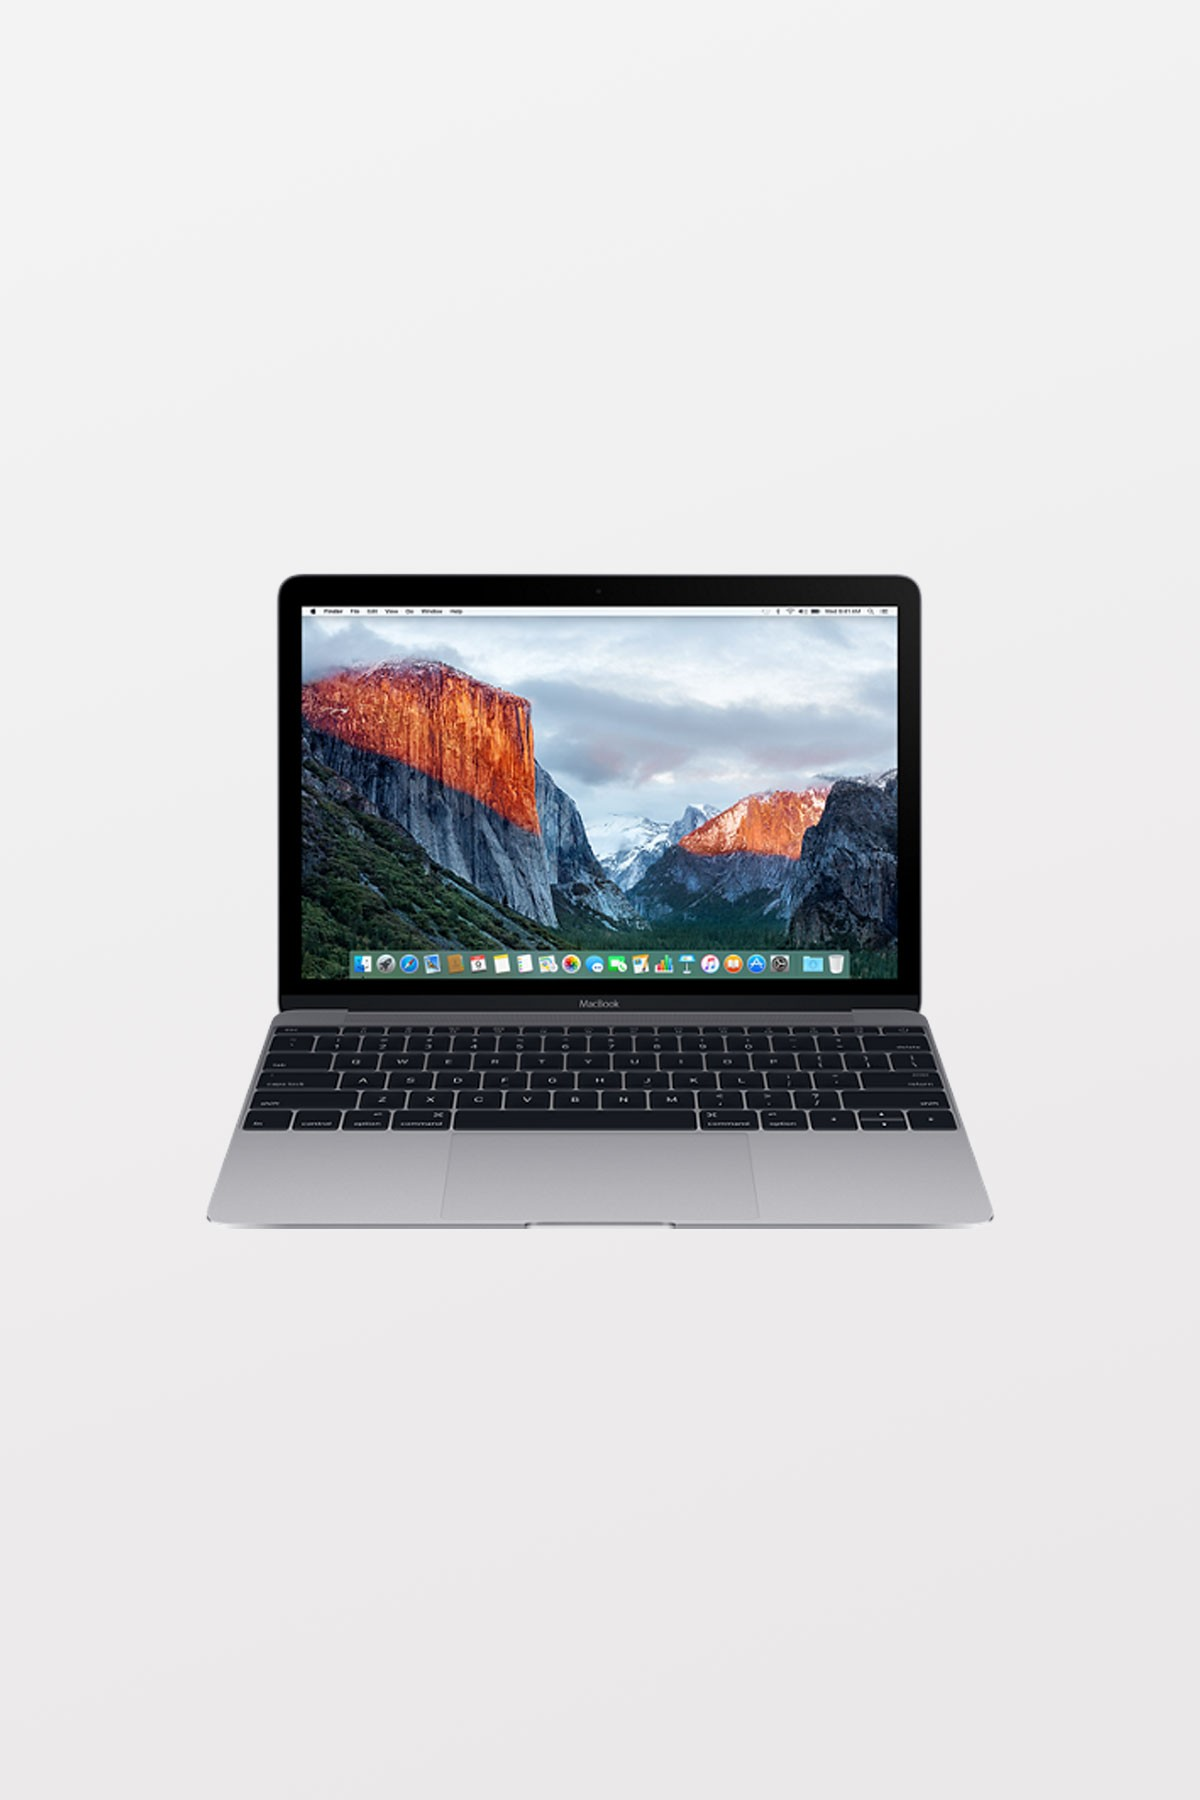 Apple MacBook Retina 12-inch (1.3GHz i5/8GB/512GB Flash/Intel HD Graphics 615) - Space Grey